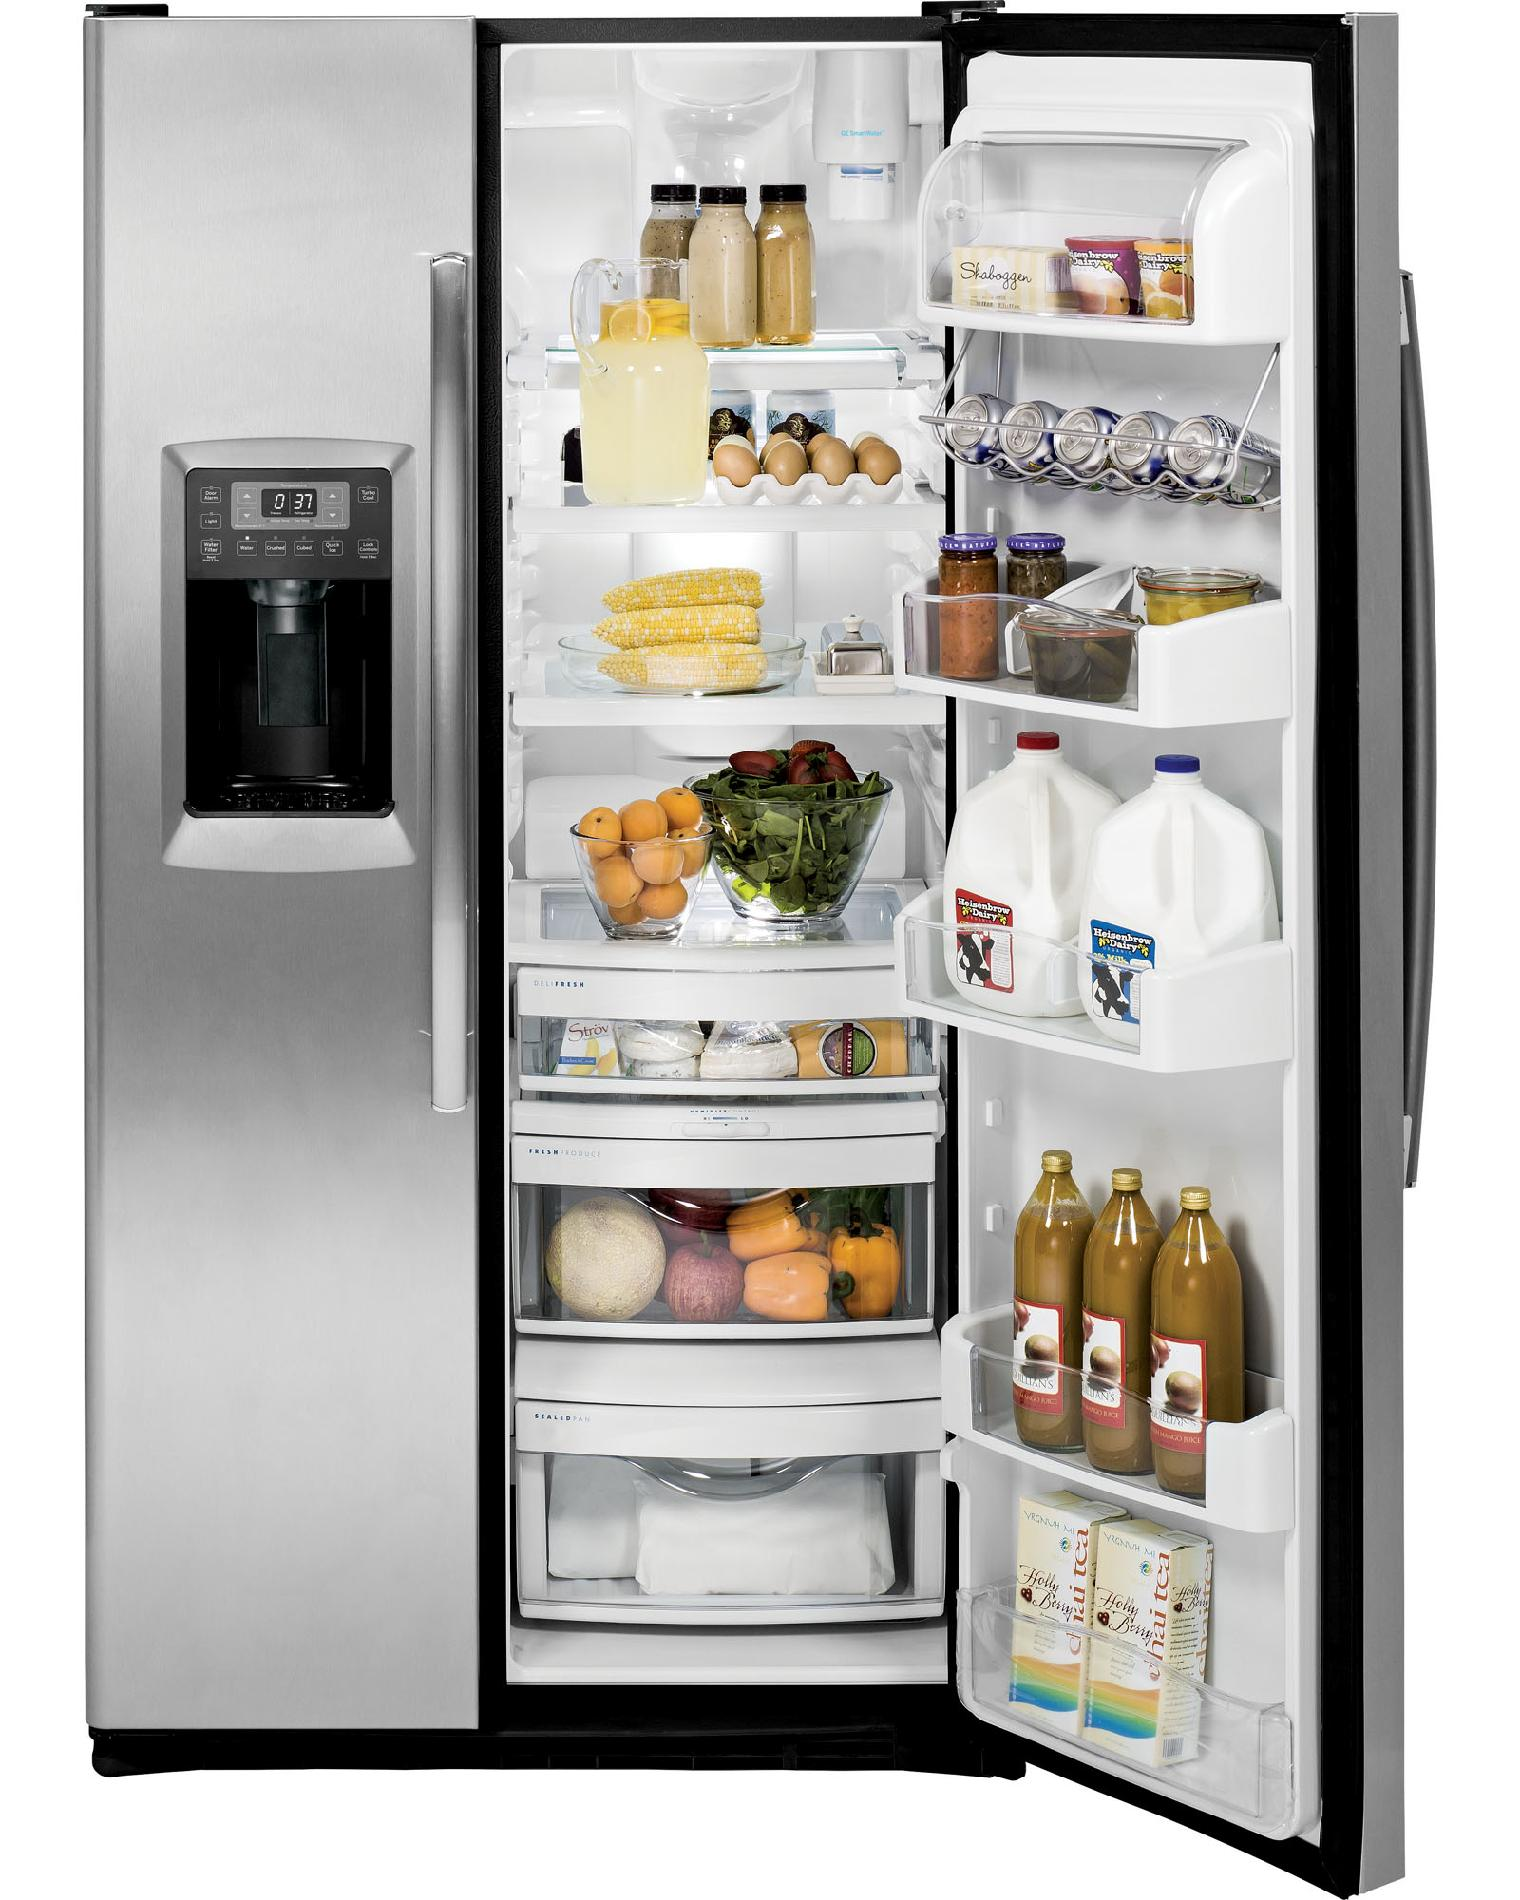 GE Profile 23.3 cu. ft. Counter-Depth Side-by-Side Refrigerator - Stainless Steel